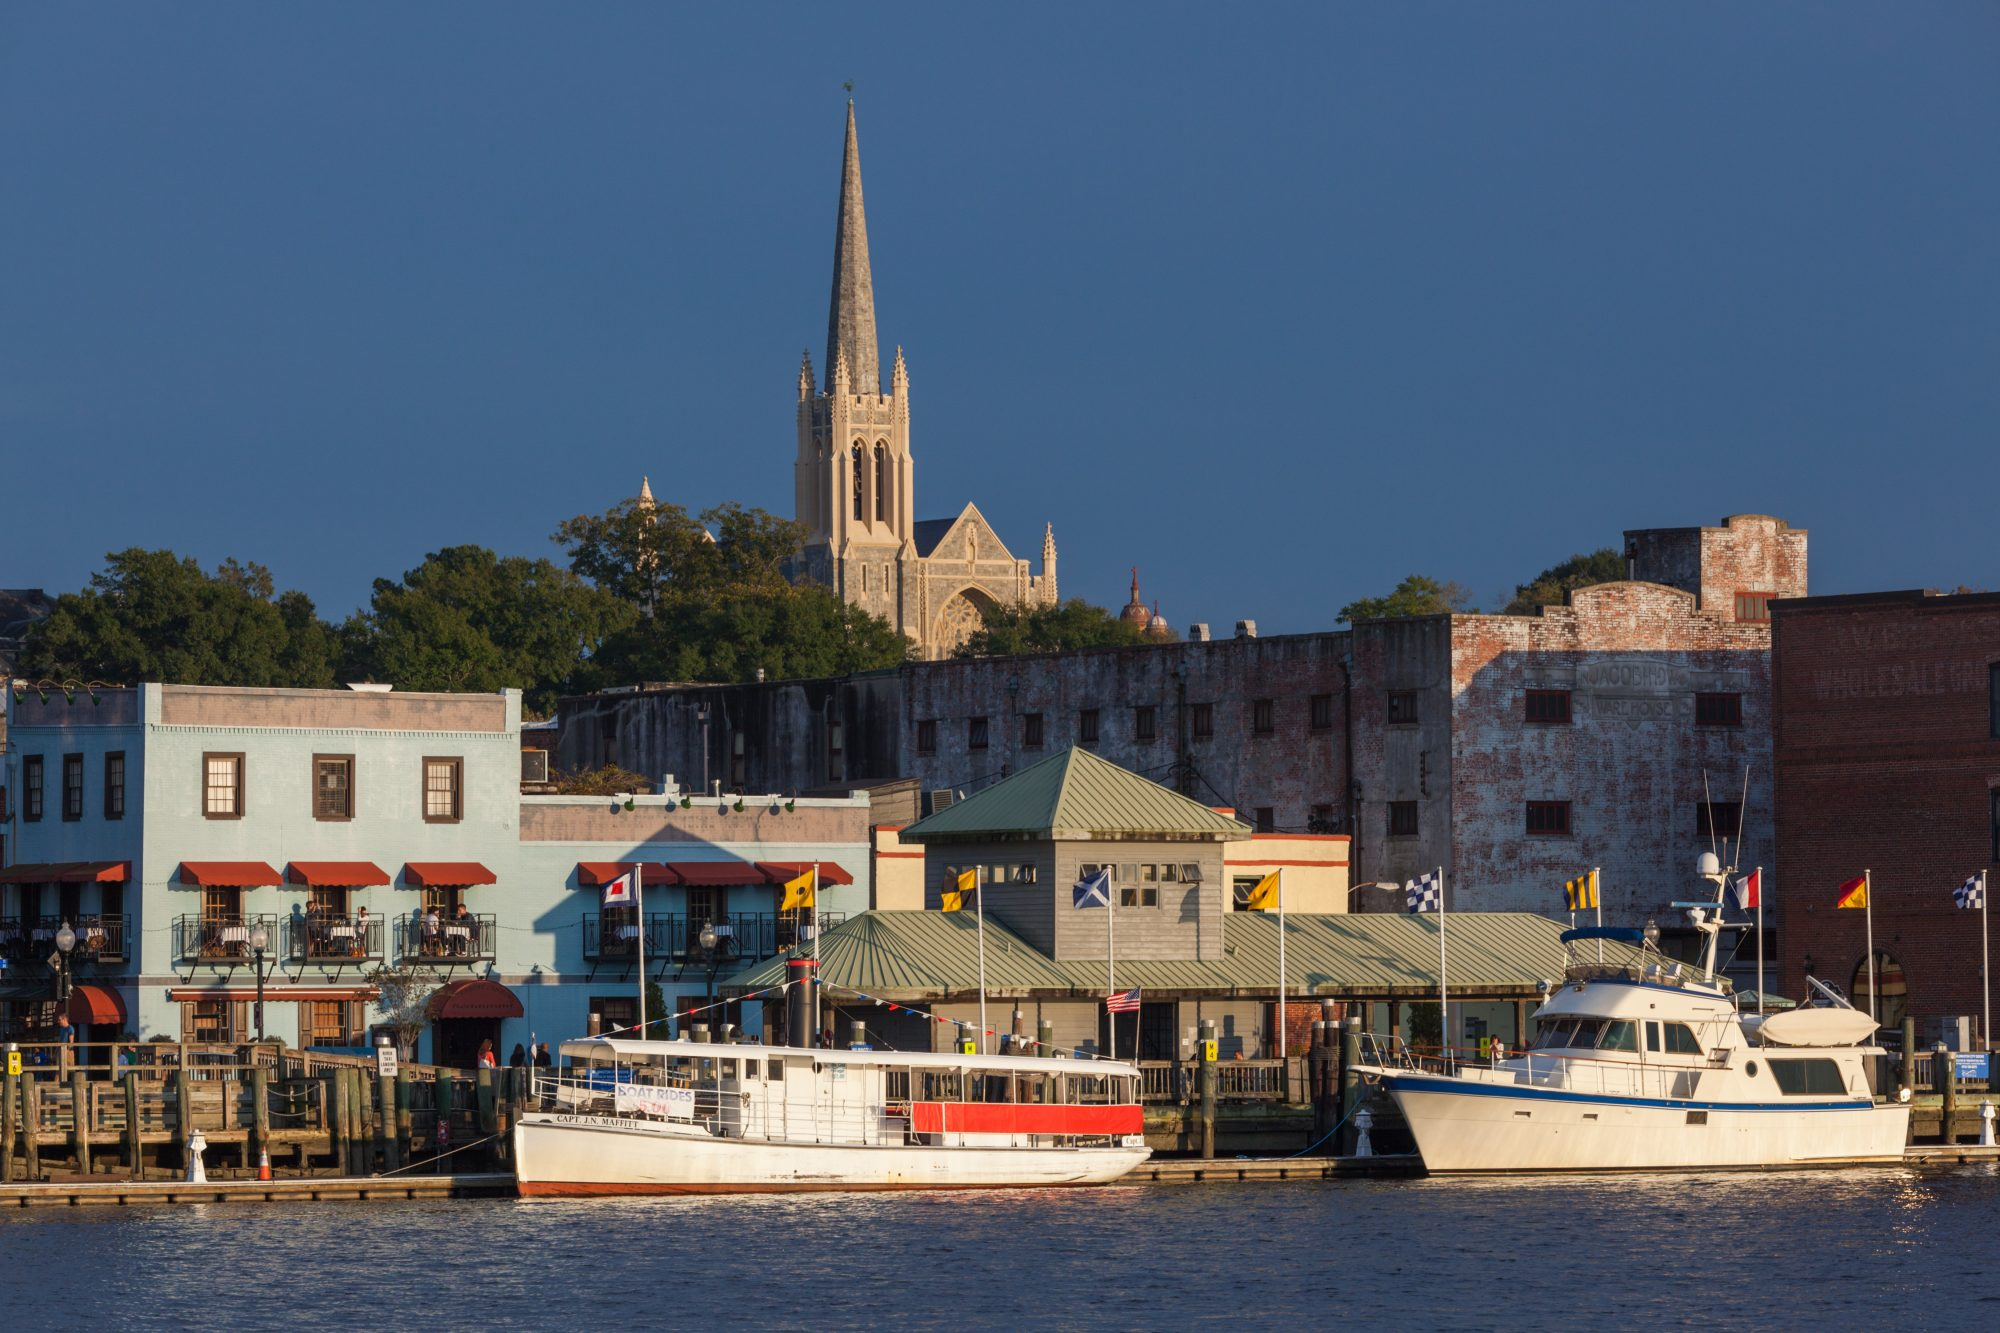 8. Wilmington, North Carolina